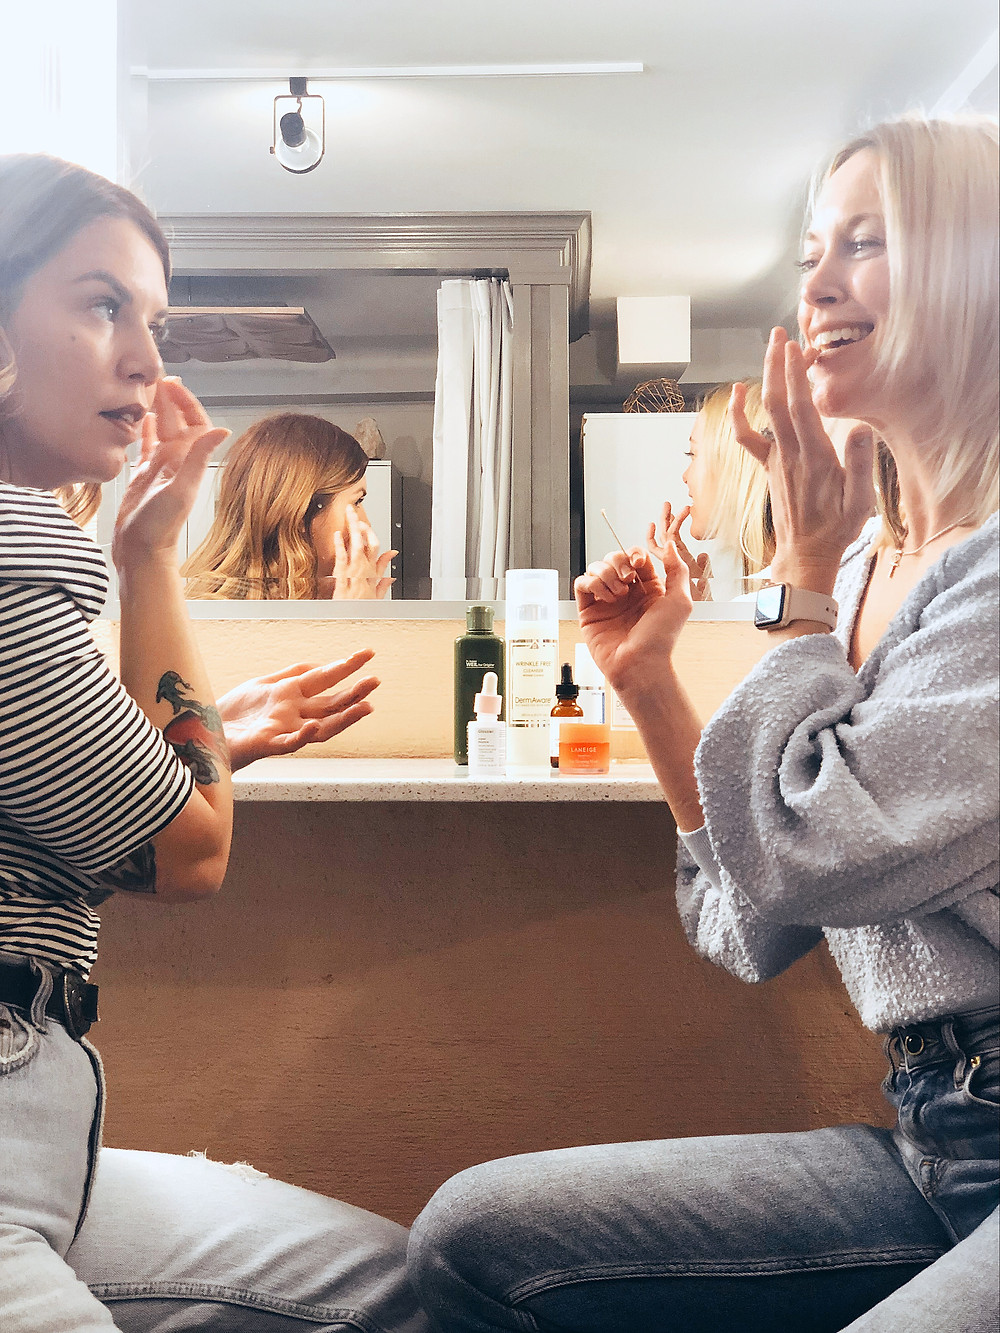 Two women applying skin care products in front of mirror.